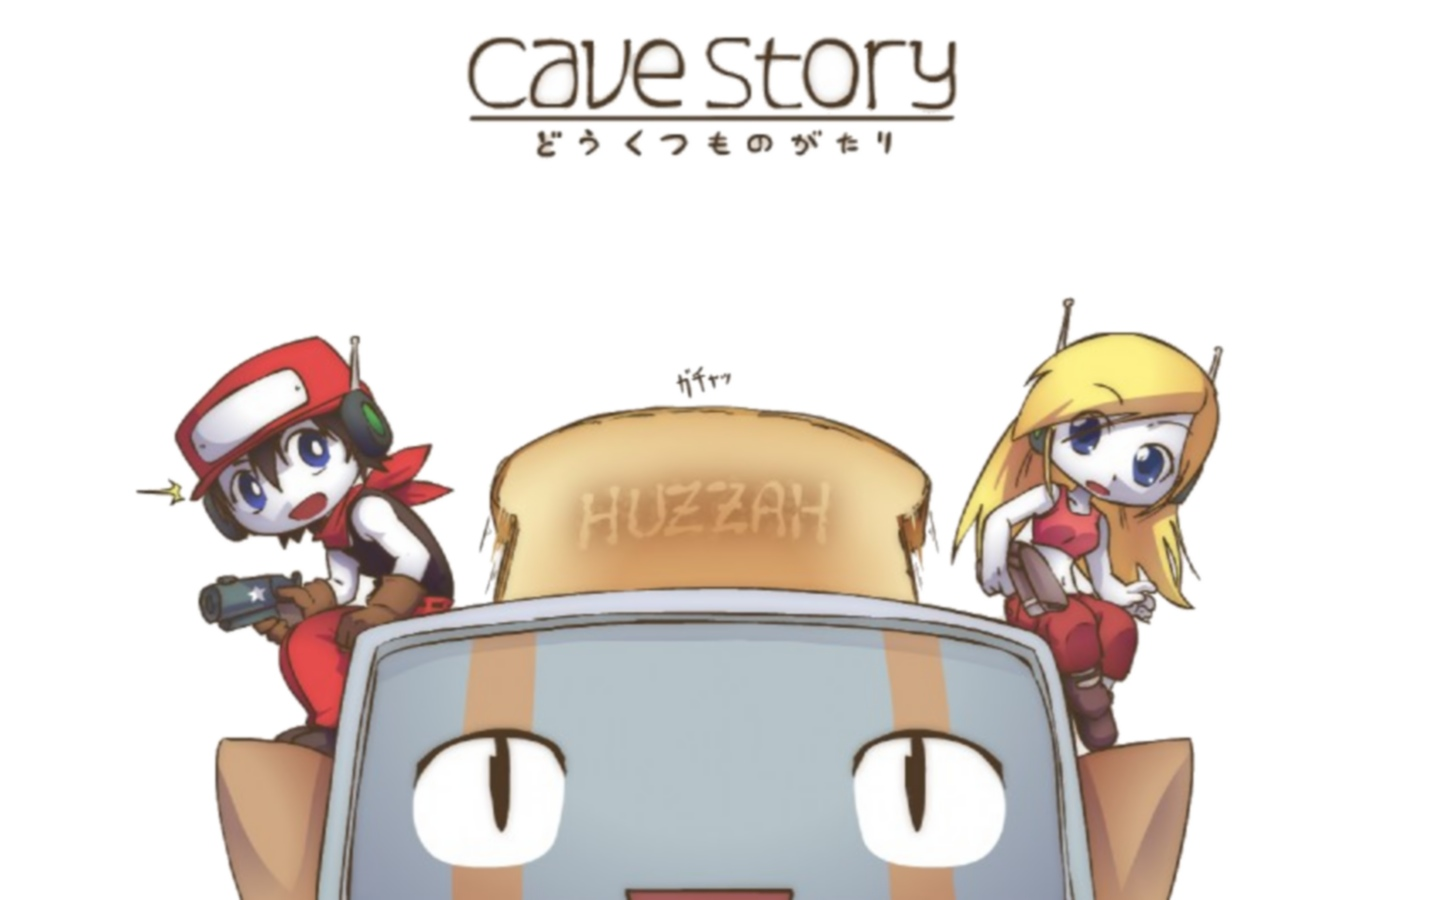 Cave story wallpaper 1092015 zerochan anime image board view fullsize cave story image voltagebd Gallery